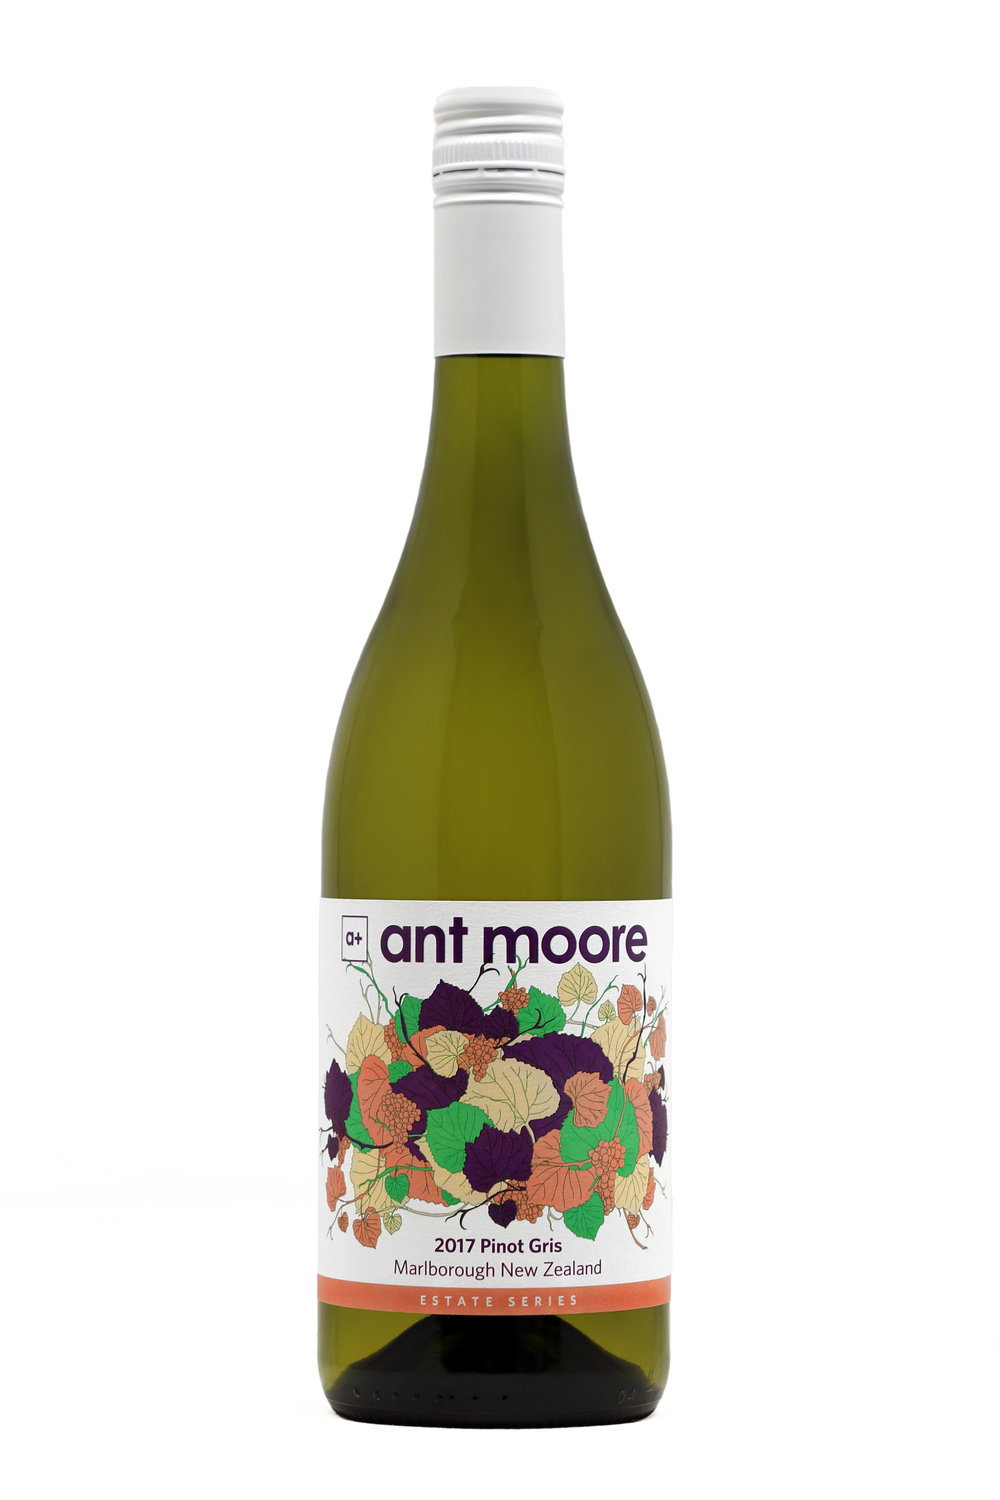 Ant Moore Estate Series Pinot Gris 2017 - Intense nose of apricot and cheese, derived from wild ferment and age on oak lees. Long dry finish with intense lasting fruit flavours, a big Pinot Gris not for the faint at heart.